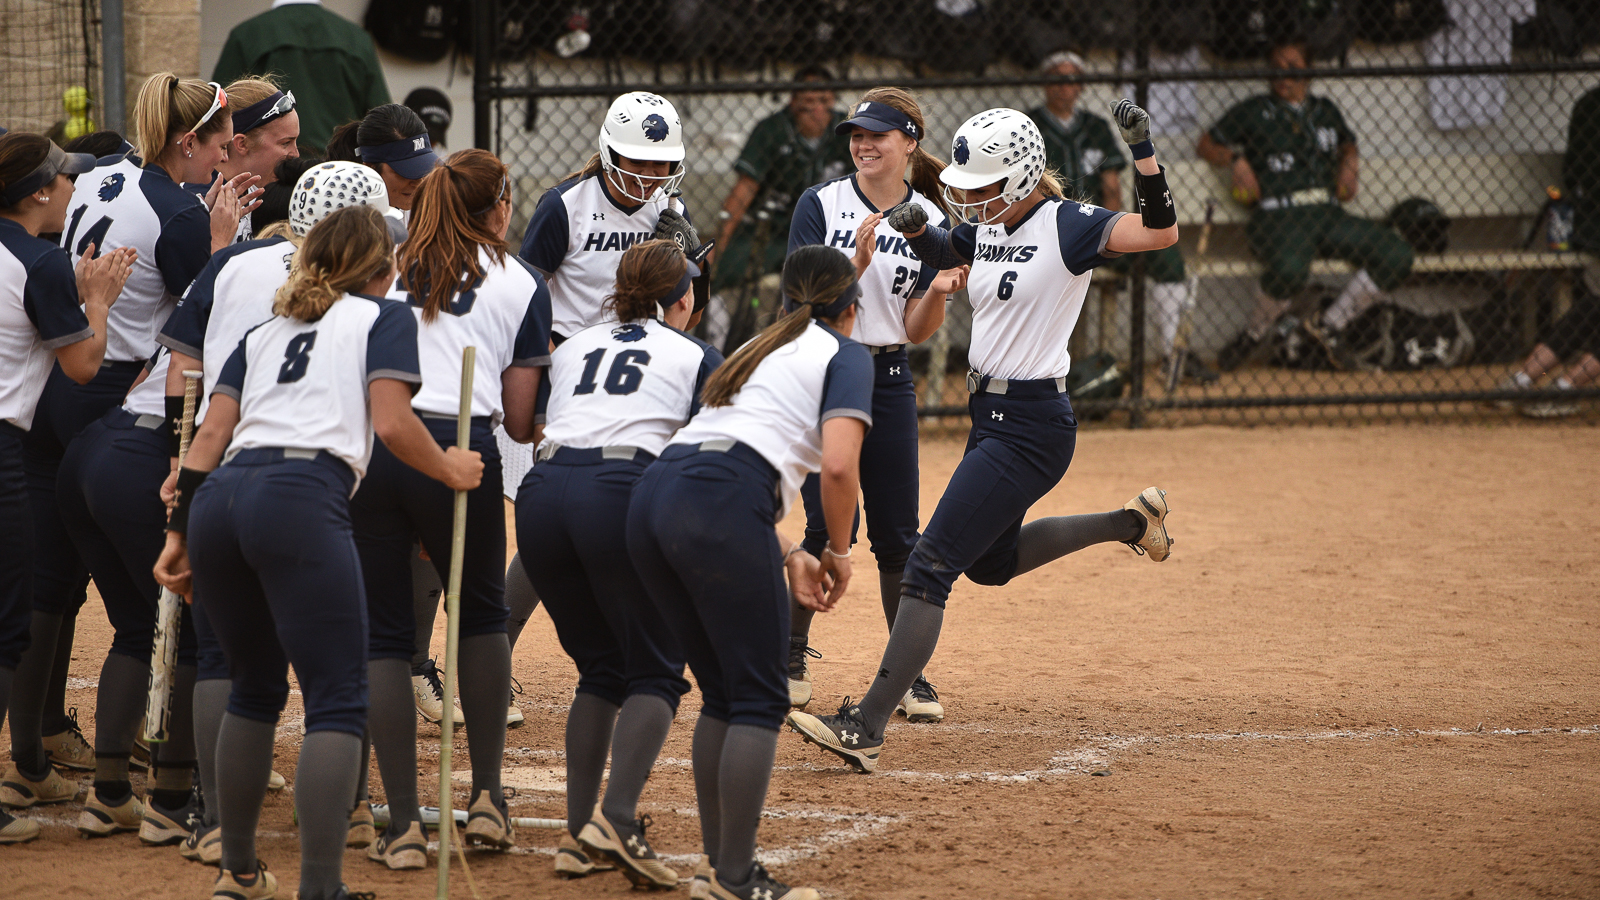 SOFTBALL ANNOUNCES 2018 FALL SCHEDULE - Monmouth University